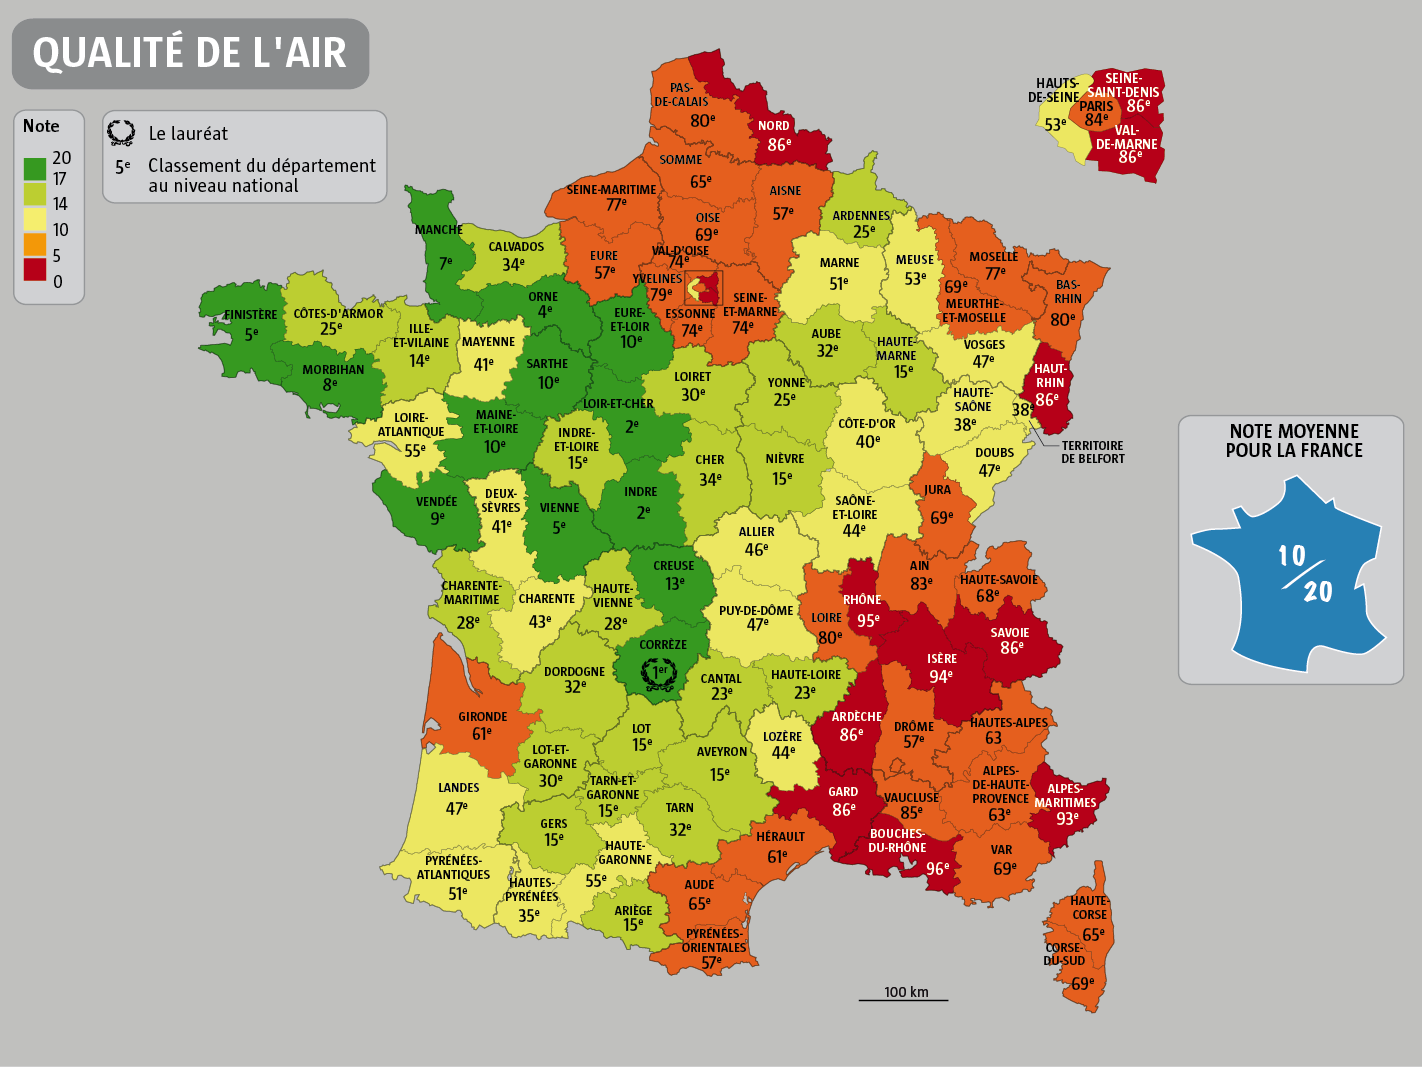 carte de france qualite de l'air